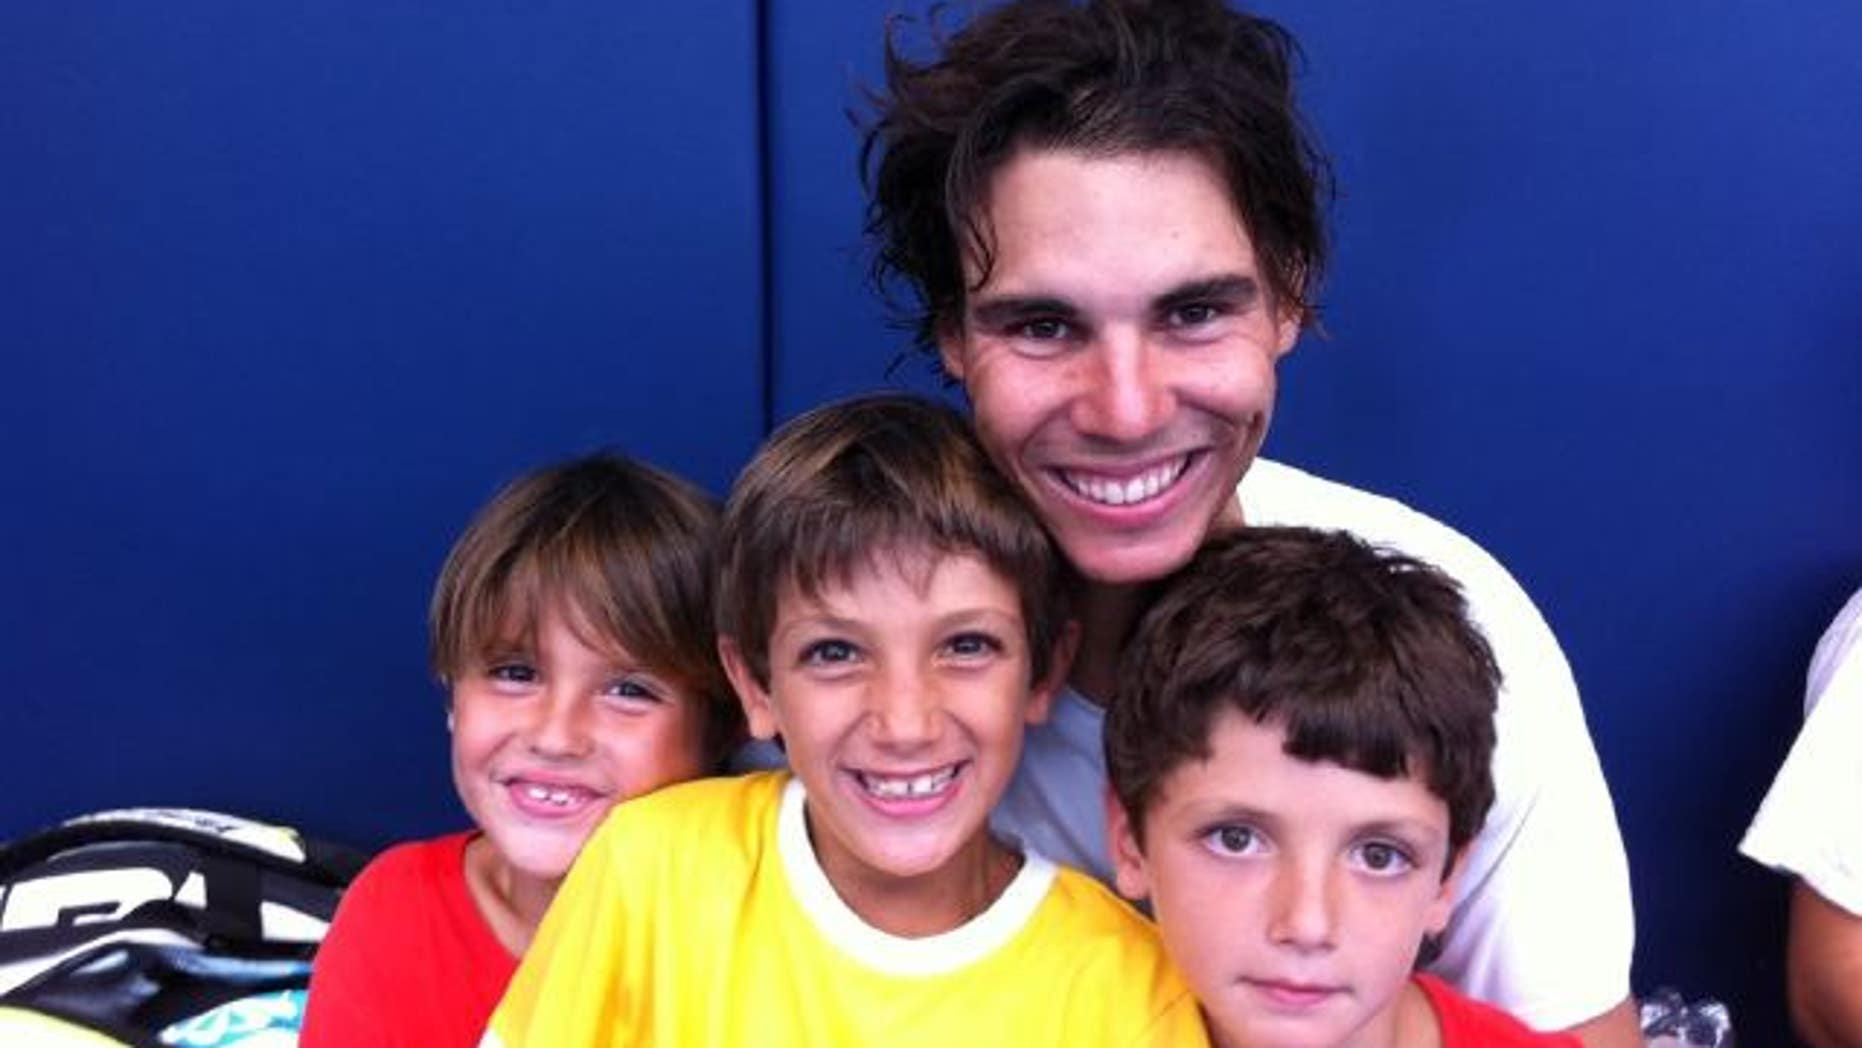 Aug 2: Rafael Nadal posted this photo of him and his three little cousins at his training center.